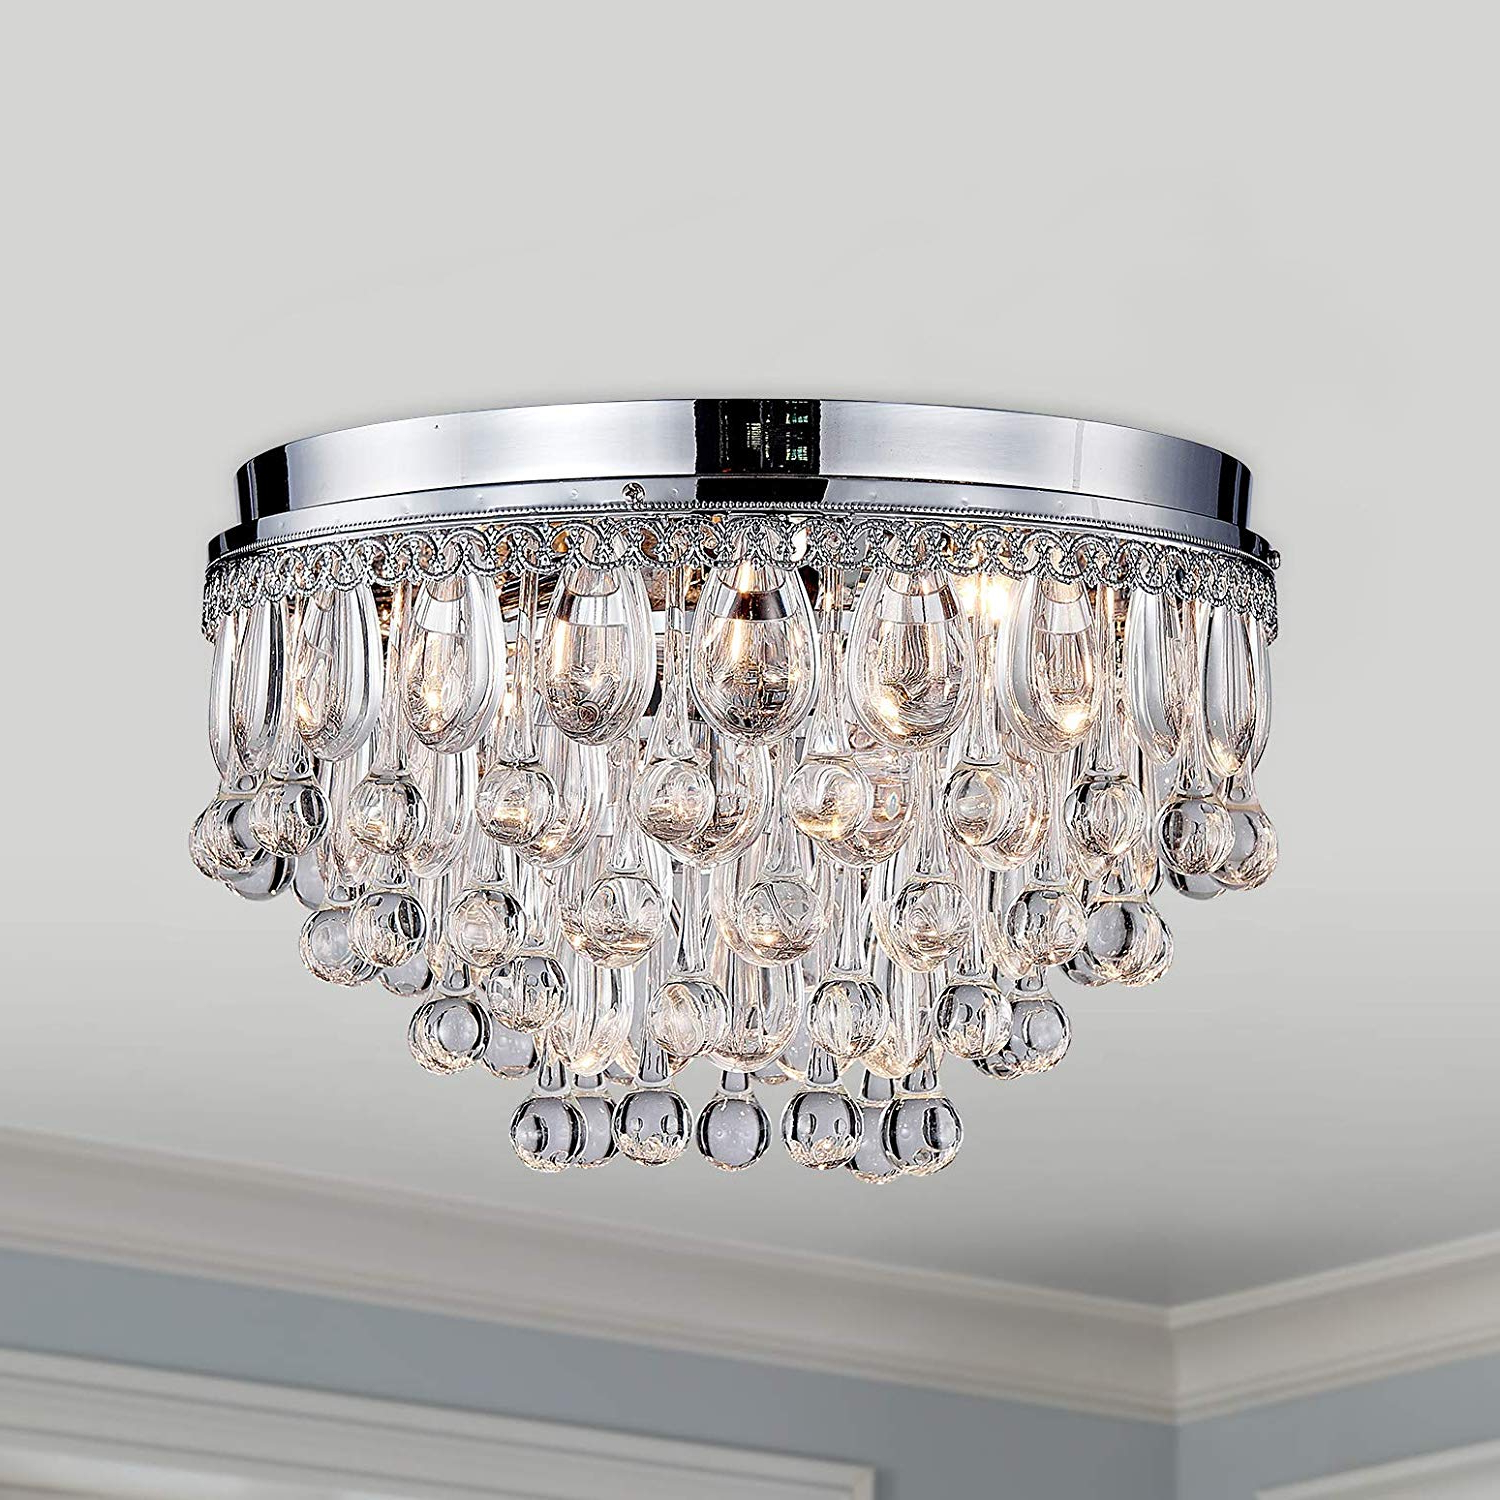 2019 Donna 4 Light Globe Chandeliers With Modern Clear Crystal Raindrop Round Chandelier Flush Mount Led Ceiling  Light Fixture Lighting Lamp For Dining Room Bathroom Bedroom Livingroom 4  E (View 2 of 25)